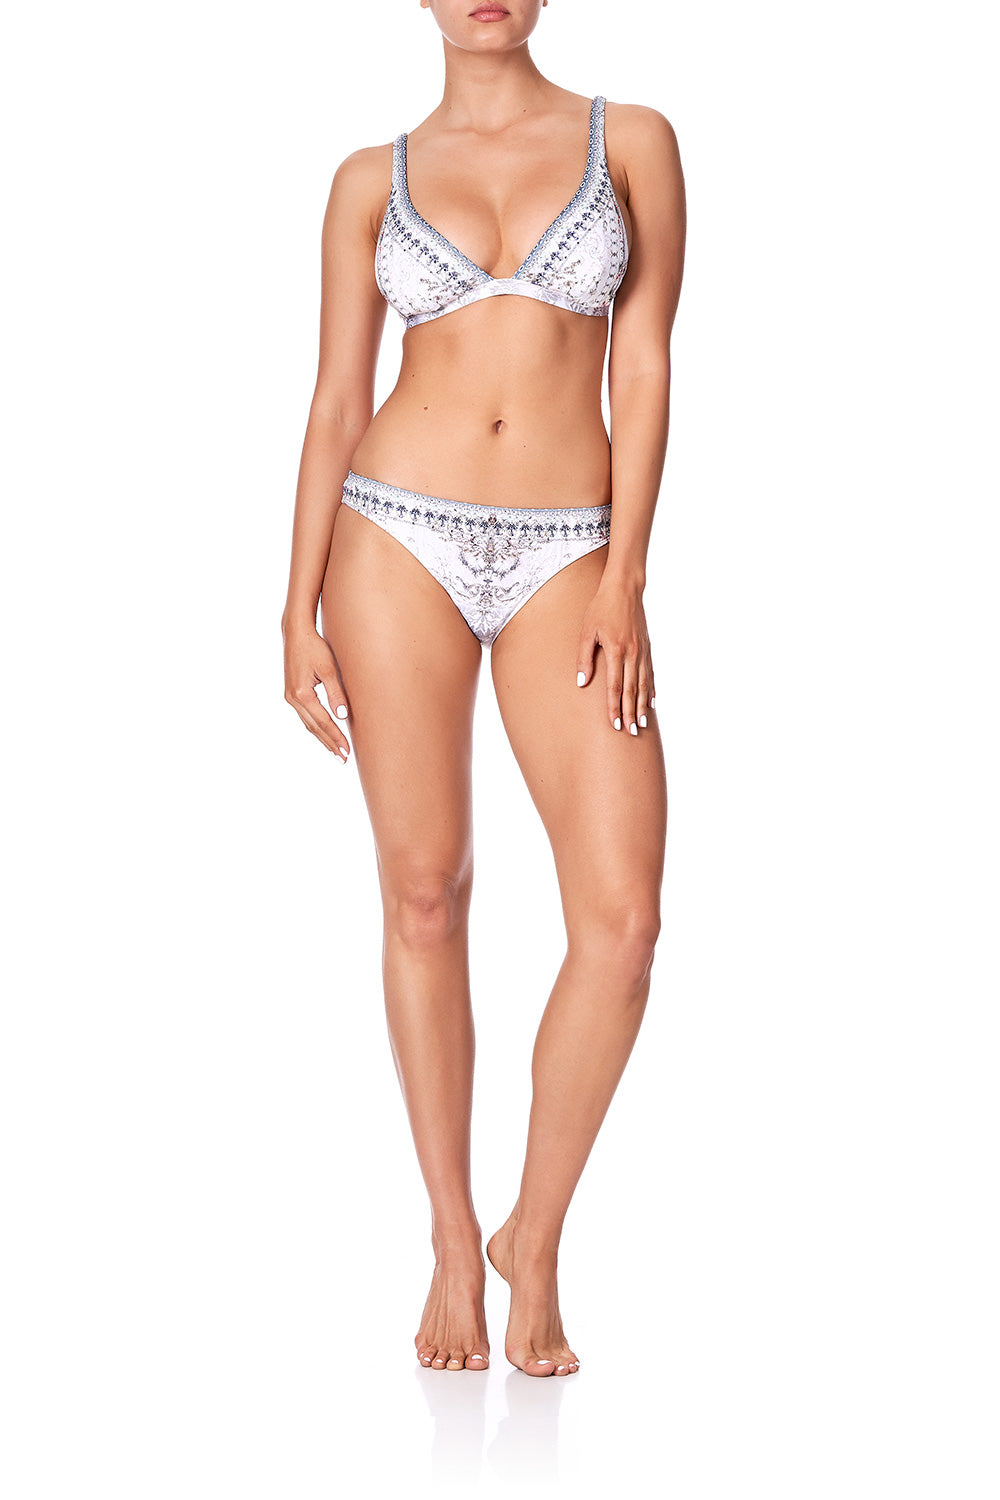 STRAPPY FIXED HI TRI BRA CRYSTAL CASTLE